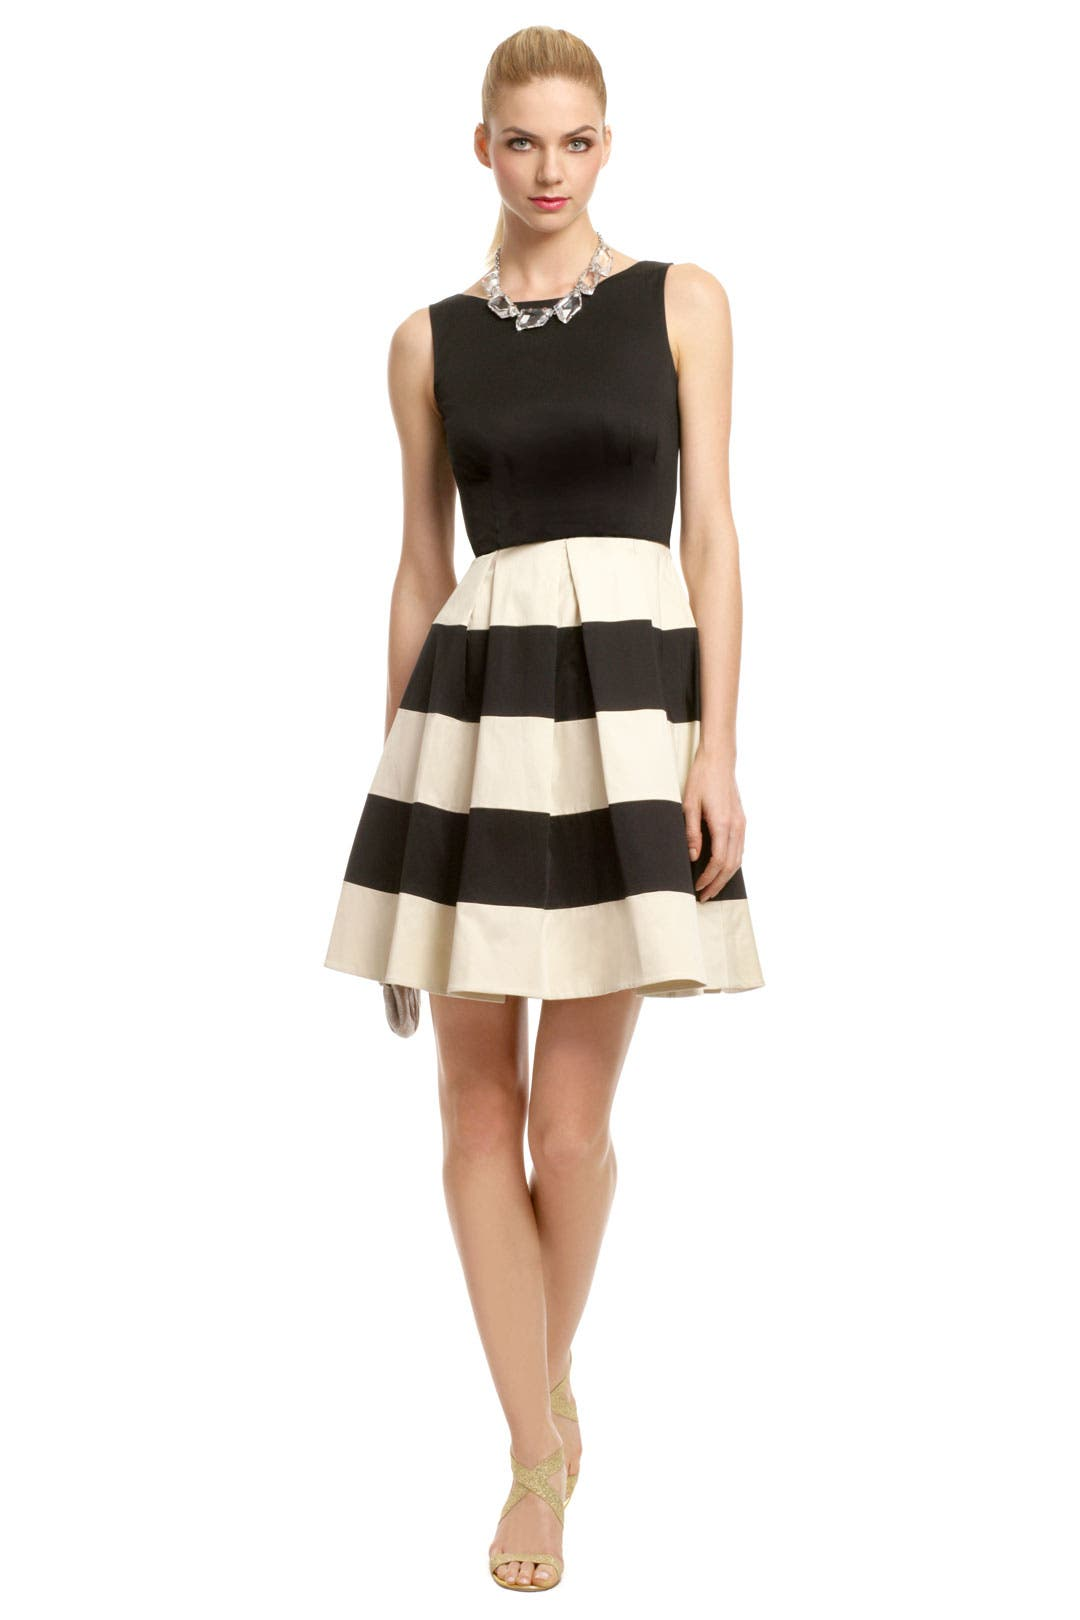 Hole in One Dress by kate spade new york